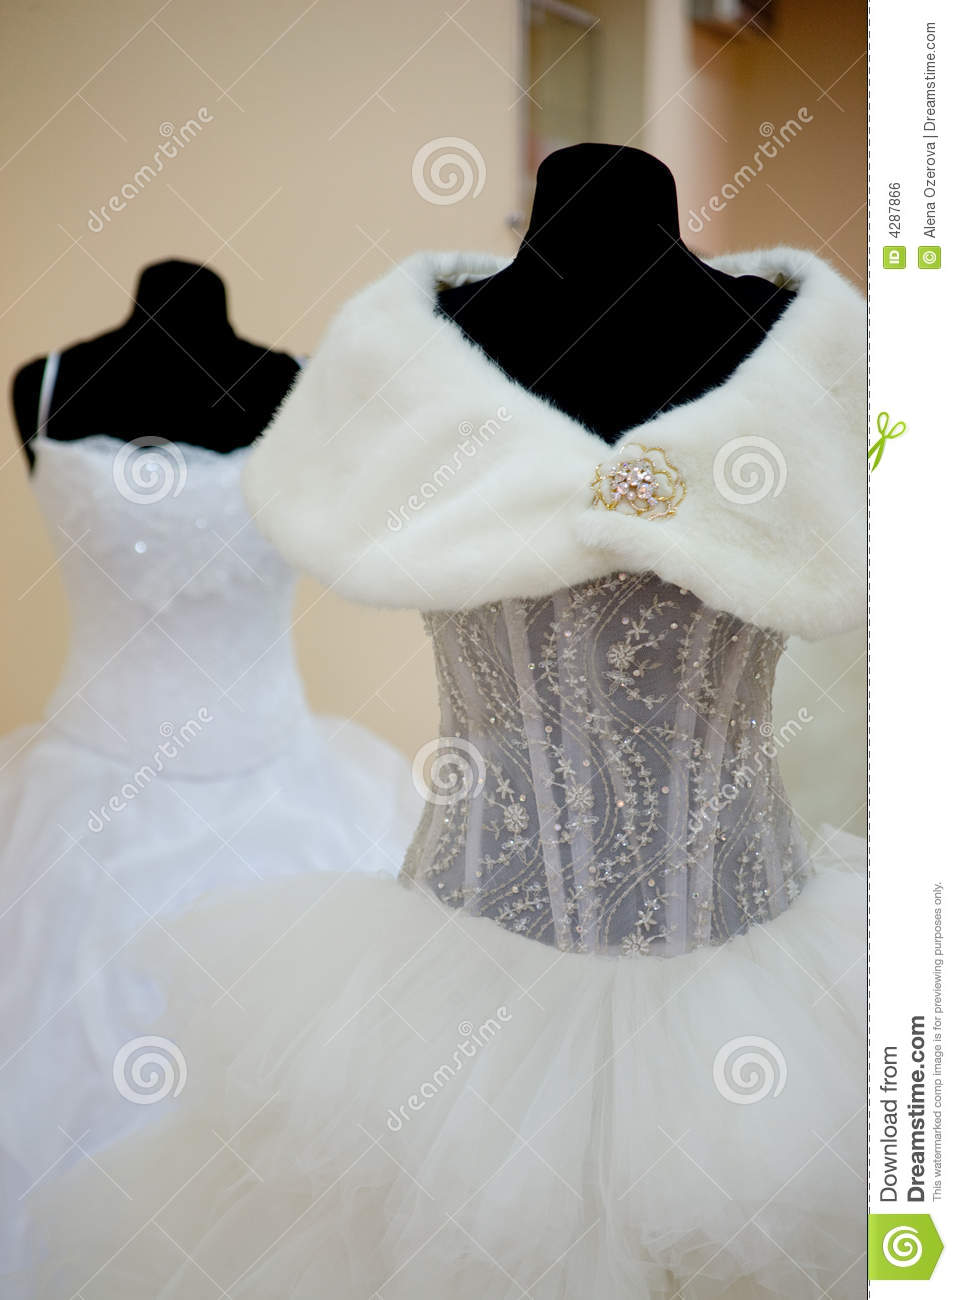 Wedding Dresses On Mannequins Royalty Free Stock Image  Image 4287866